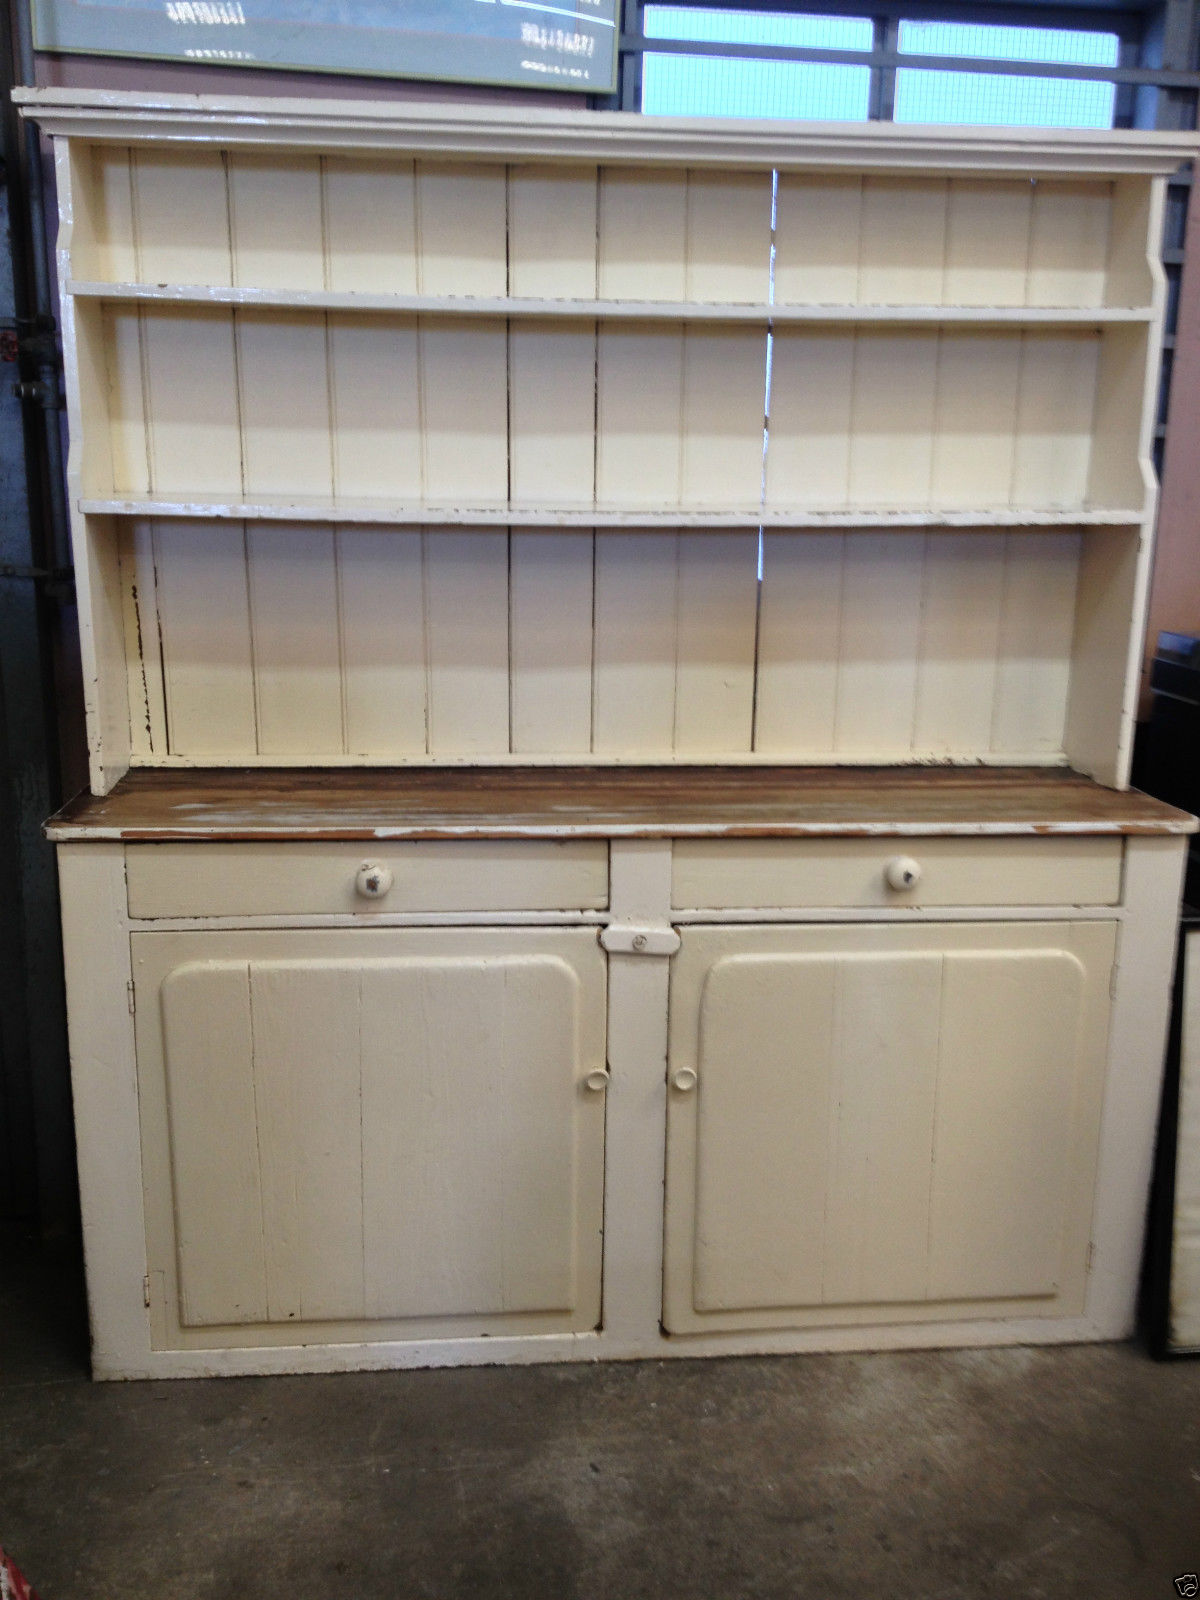 Victorian Shabby Chic Rustic Country Kitchen Dresser Hutch | Halsey Road Recyclers